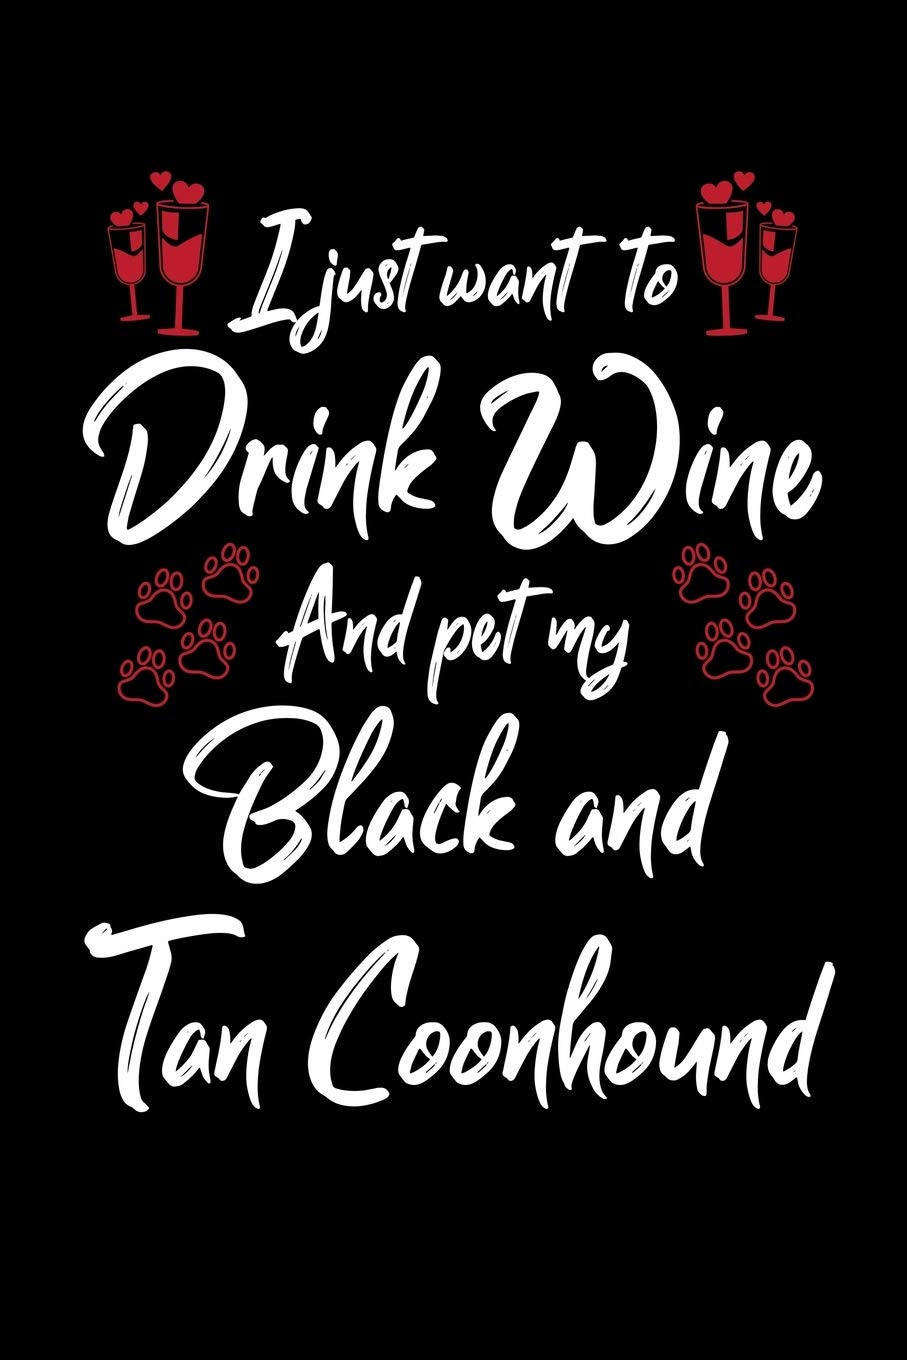 I Just Want To Drink Wine And Pet My Black And Tan Coonhound: 6×9 inch, Wine Review Journal, 110 Pages